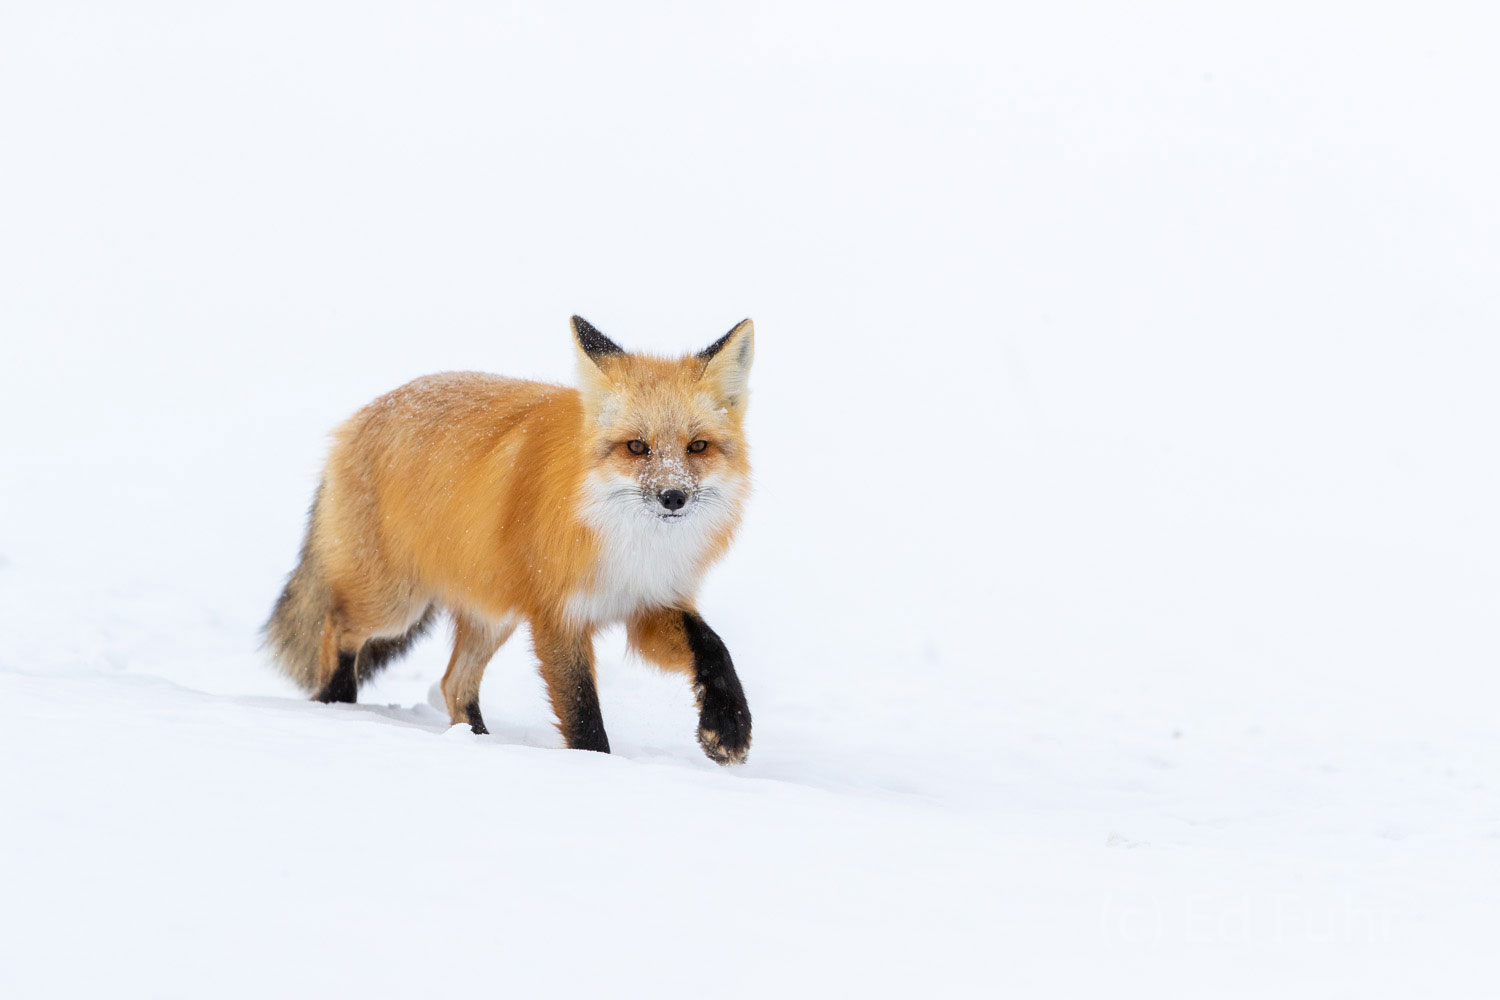 A red fox makes his way across a snow - covered meadow.